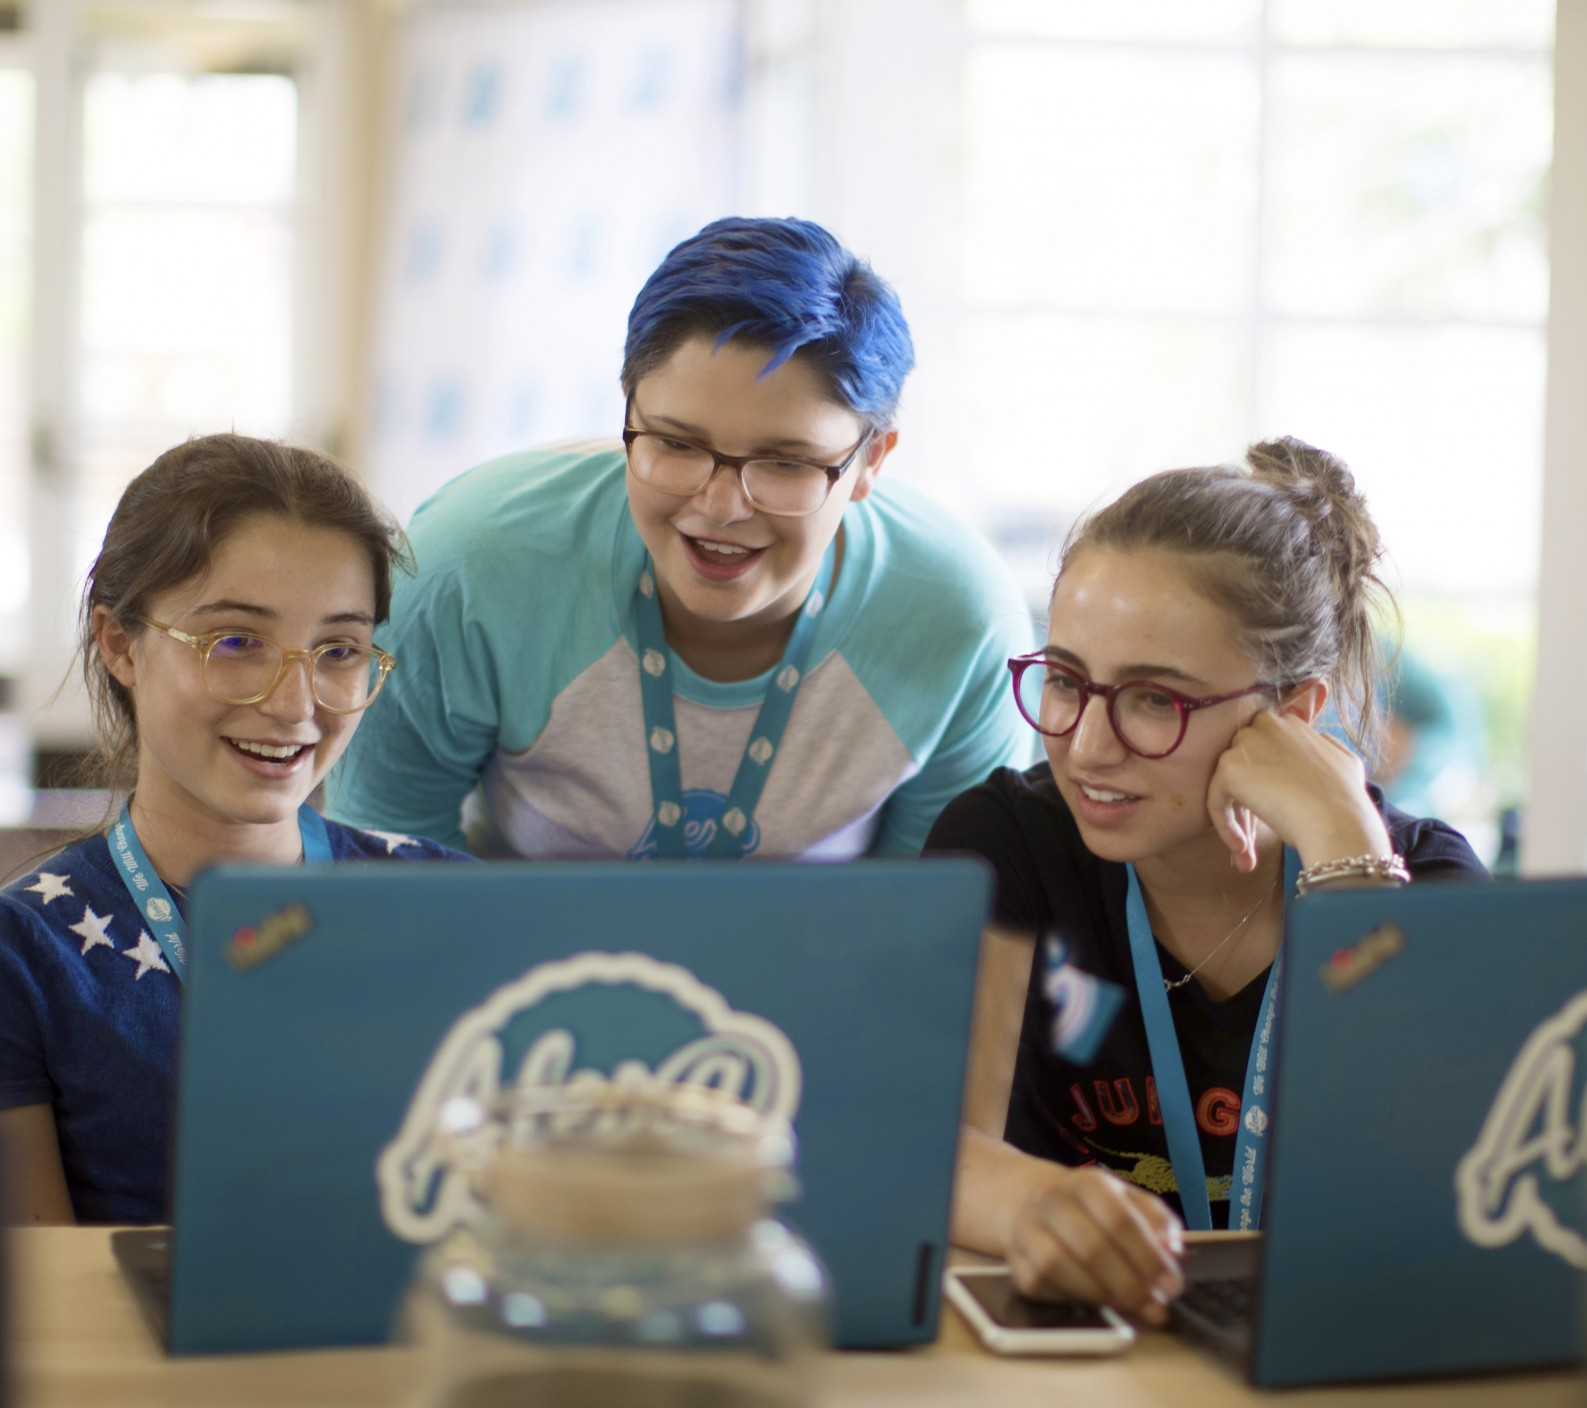 Summer Program - Technology | Alexa Cafe: All-Girls STEM Camp | Held at Rice University